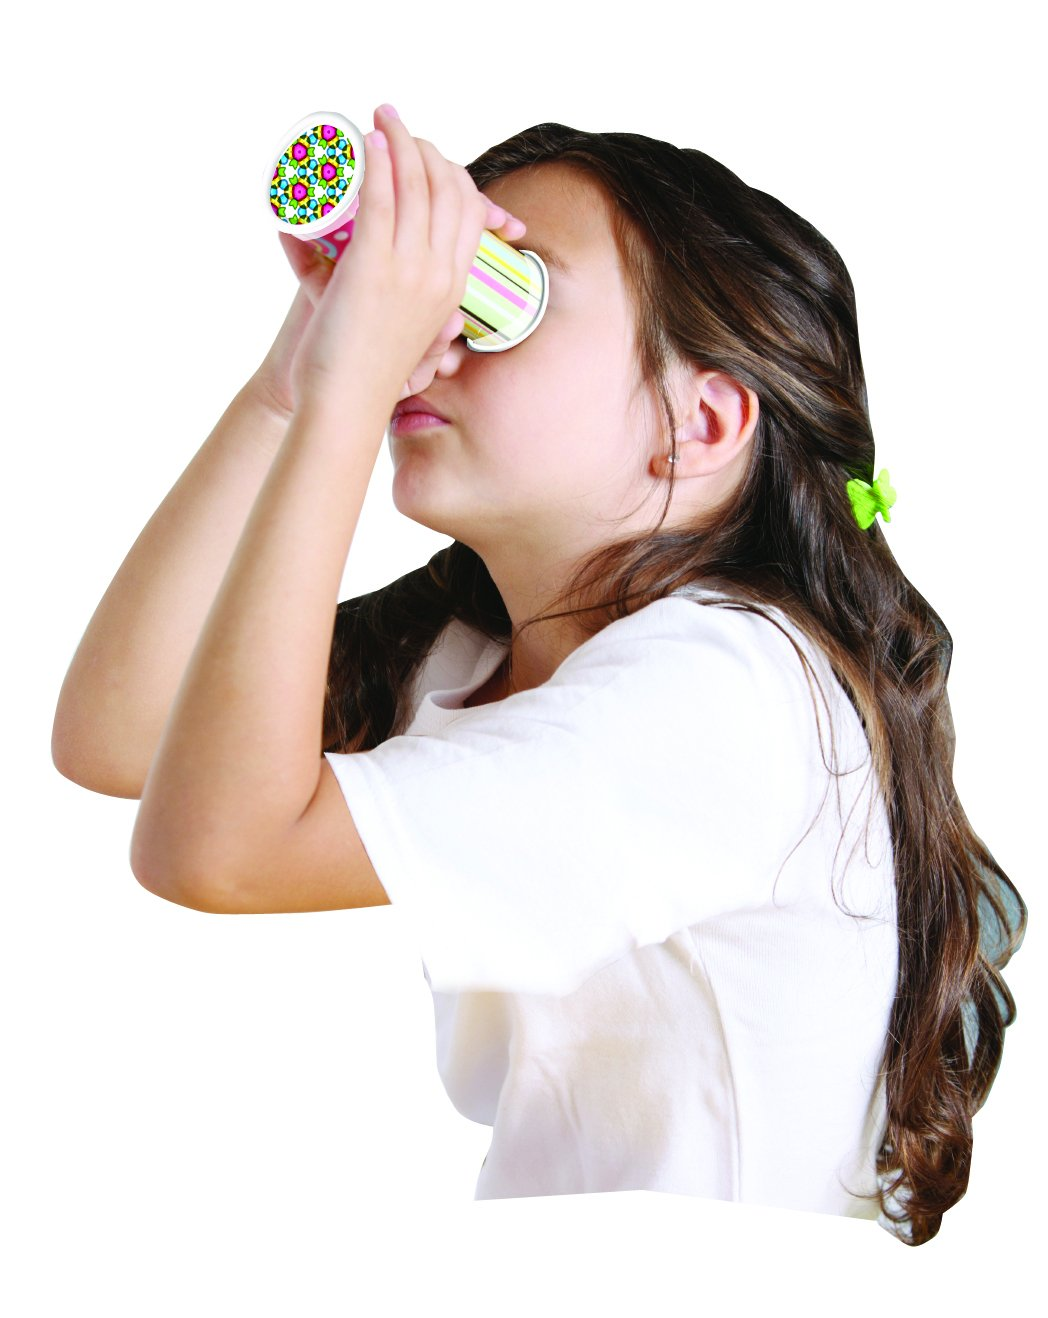 Hygloss Products Kaleidoscope Kit For Kids - Make Your Own Kaleidoscopes - 6-3/4 x 1-3/8 Inches, 12 Pack by Hygloss (Image #2)